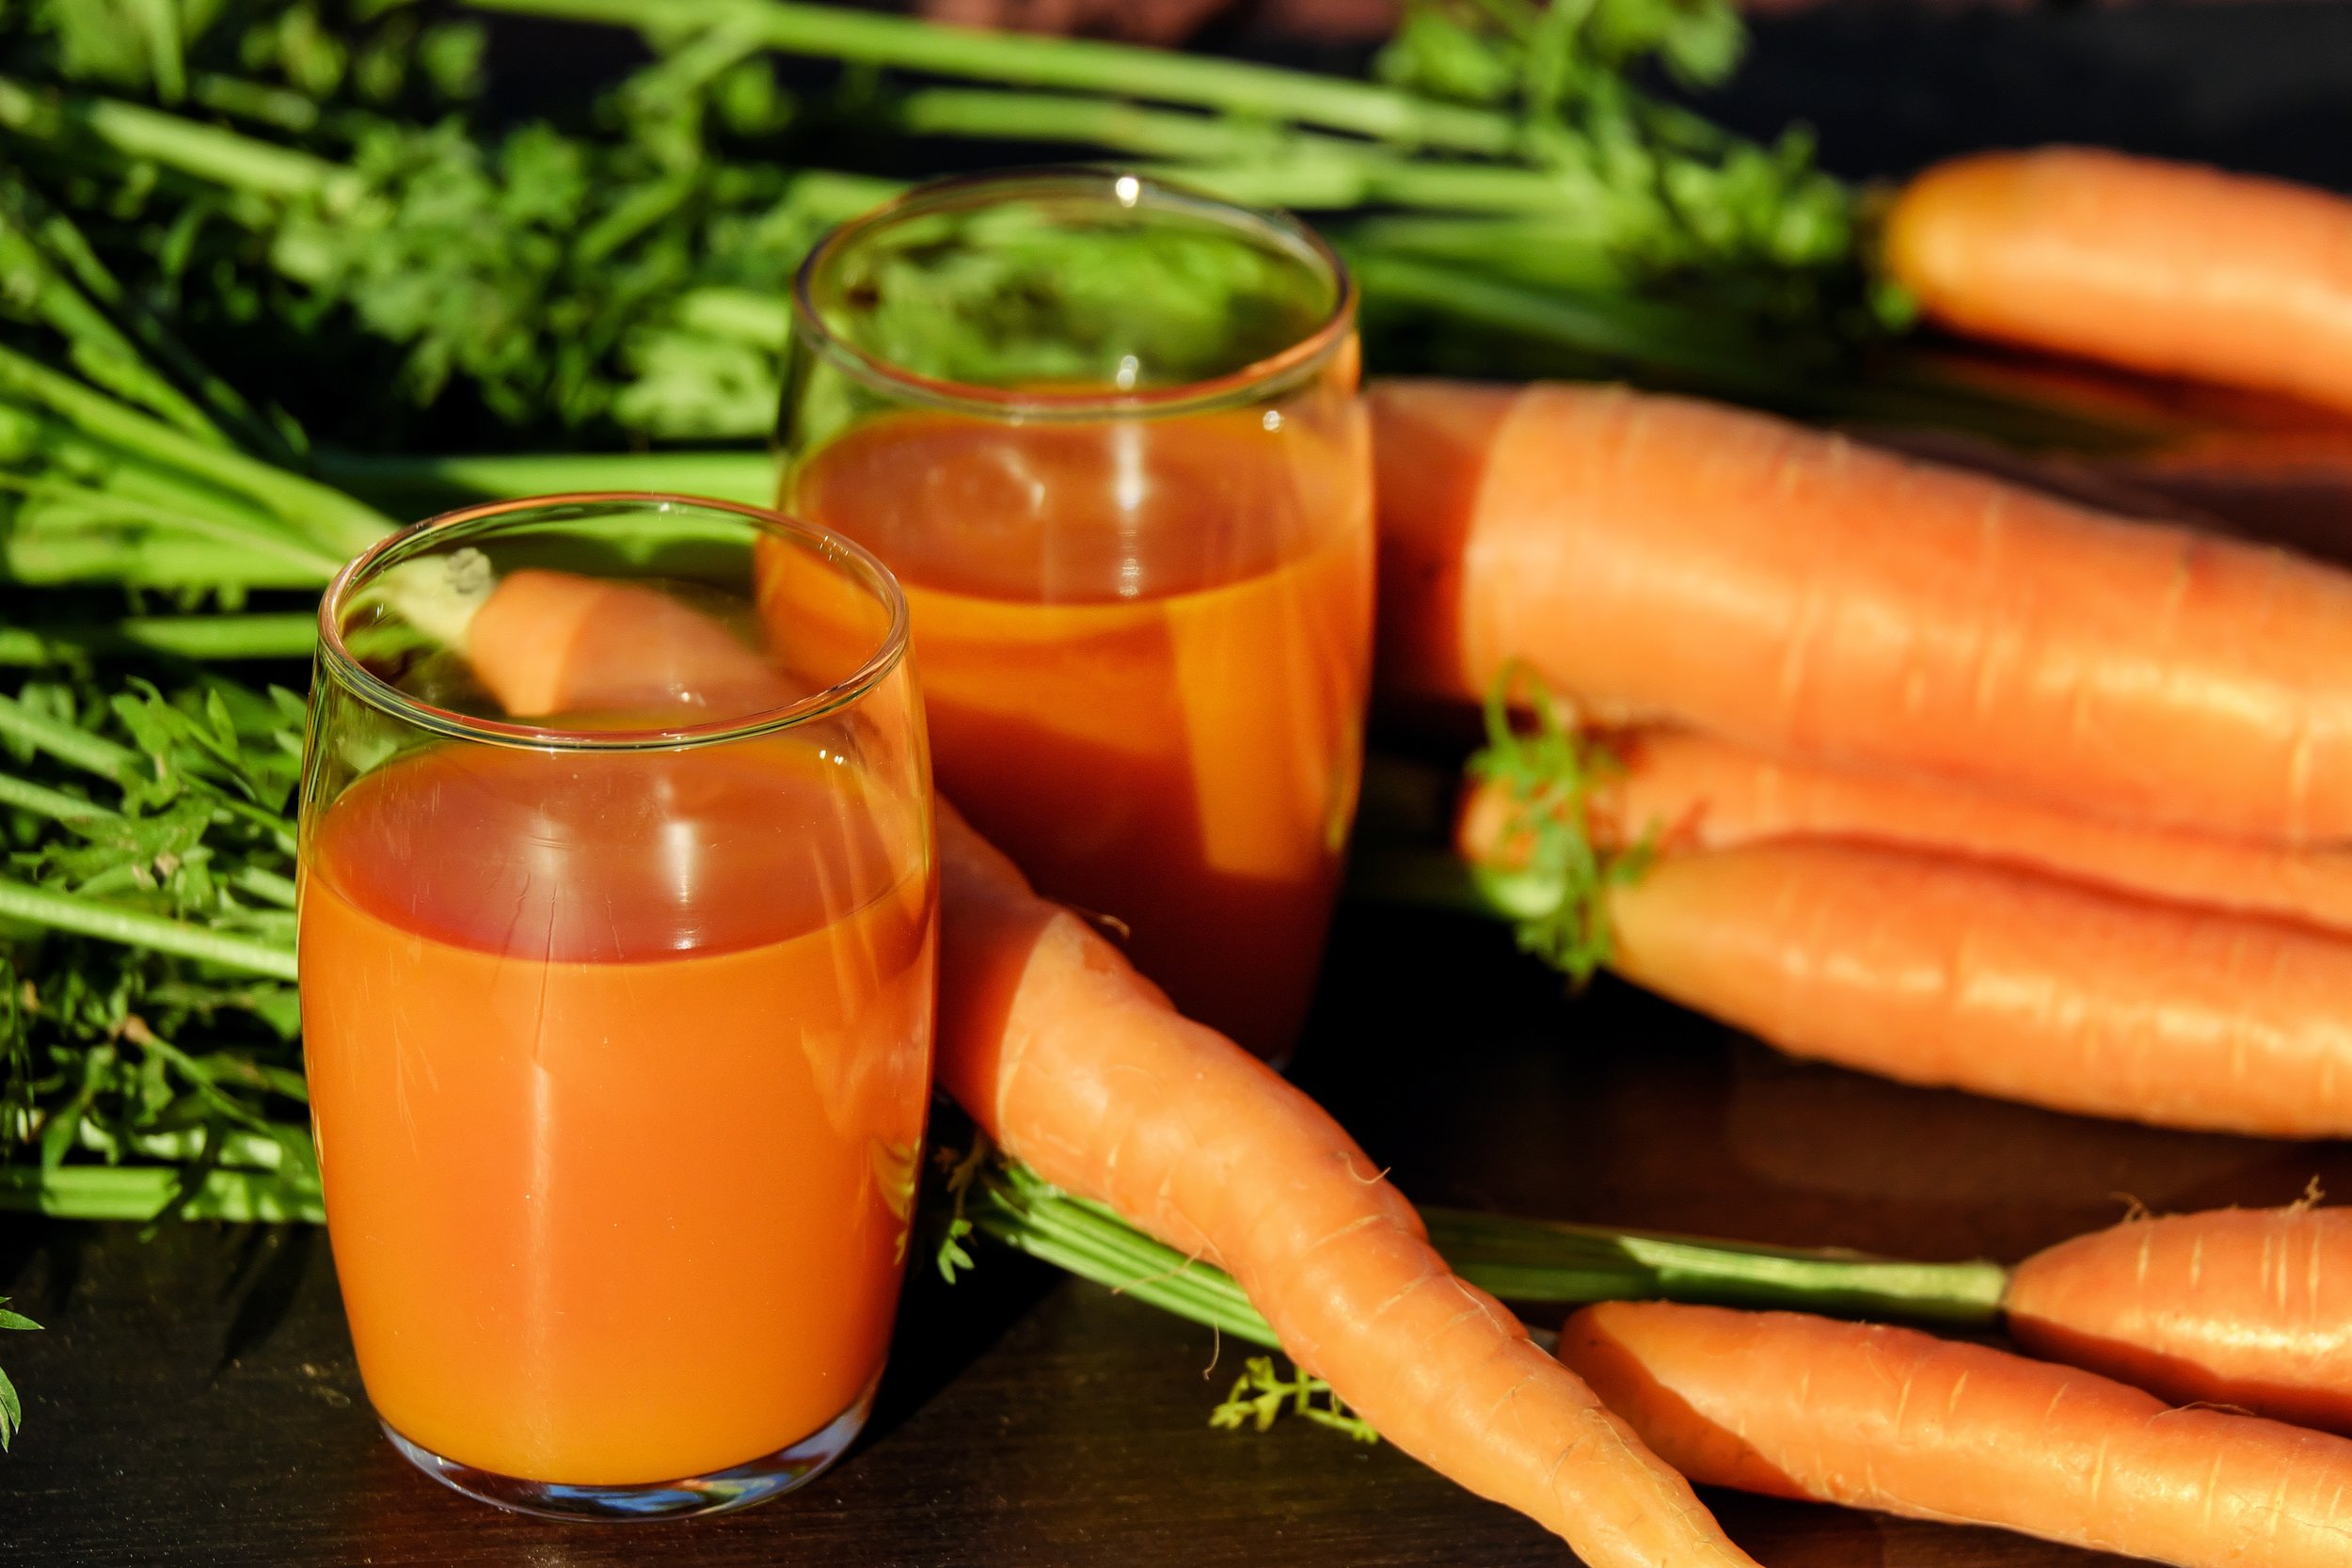 agriculture-breakfast-carrot-juice-162670.jpg